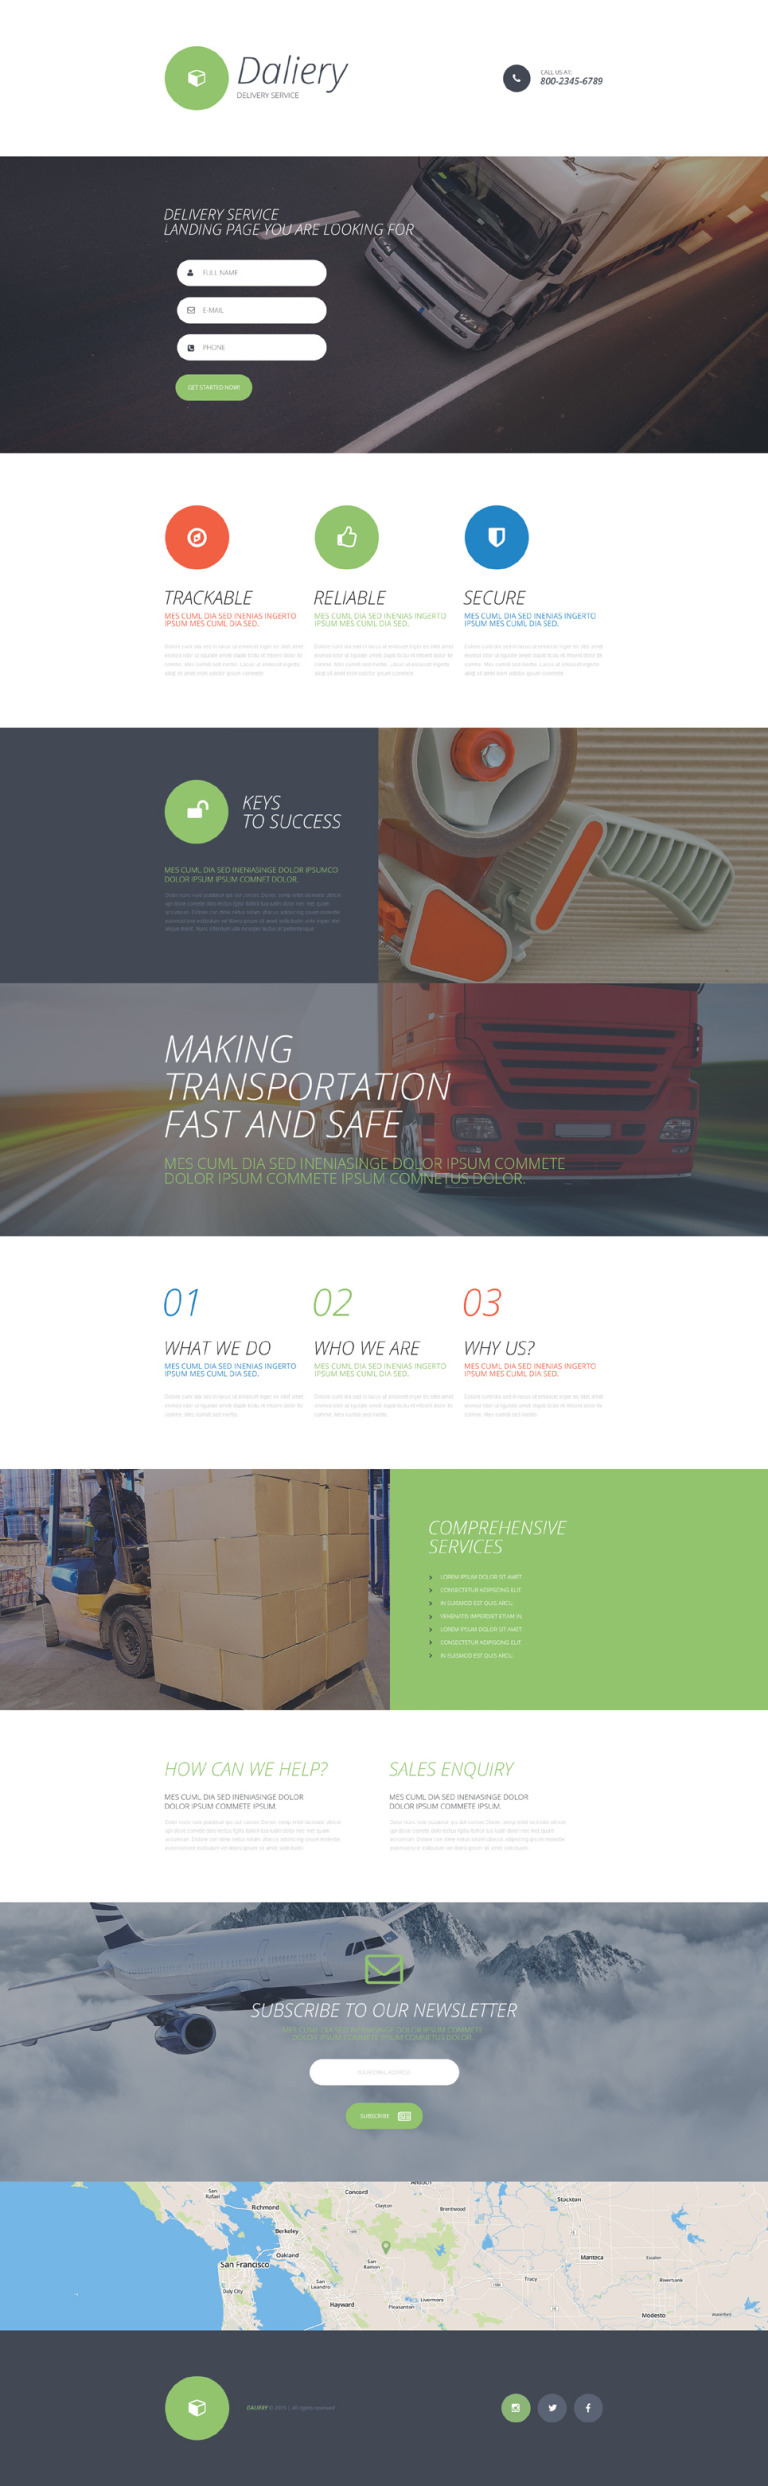 Delivery Services Responsive Landing Page Template New Screenshots BIG